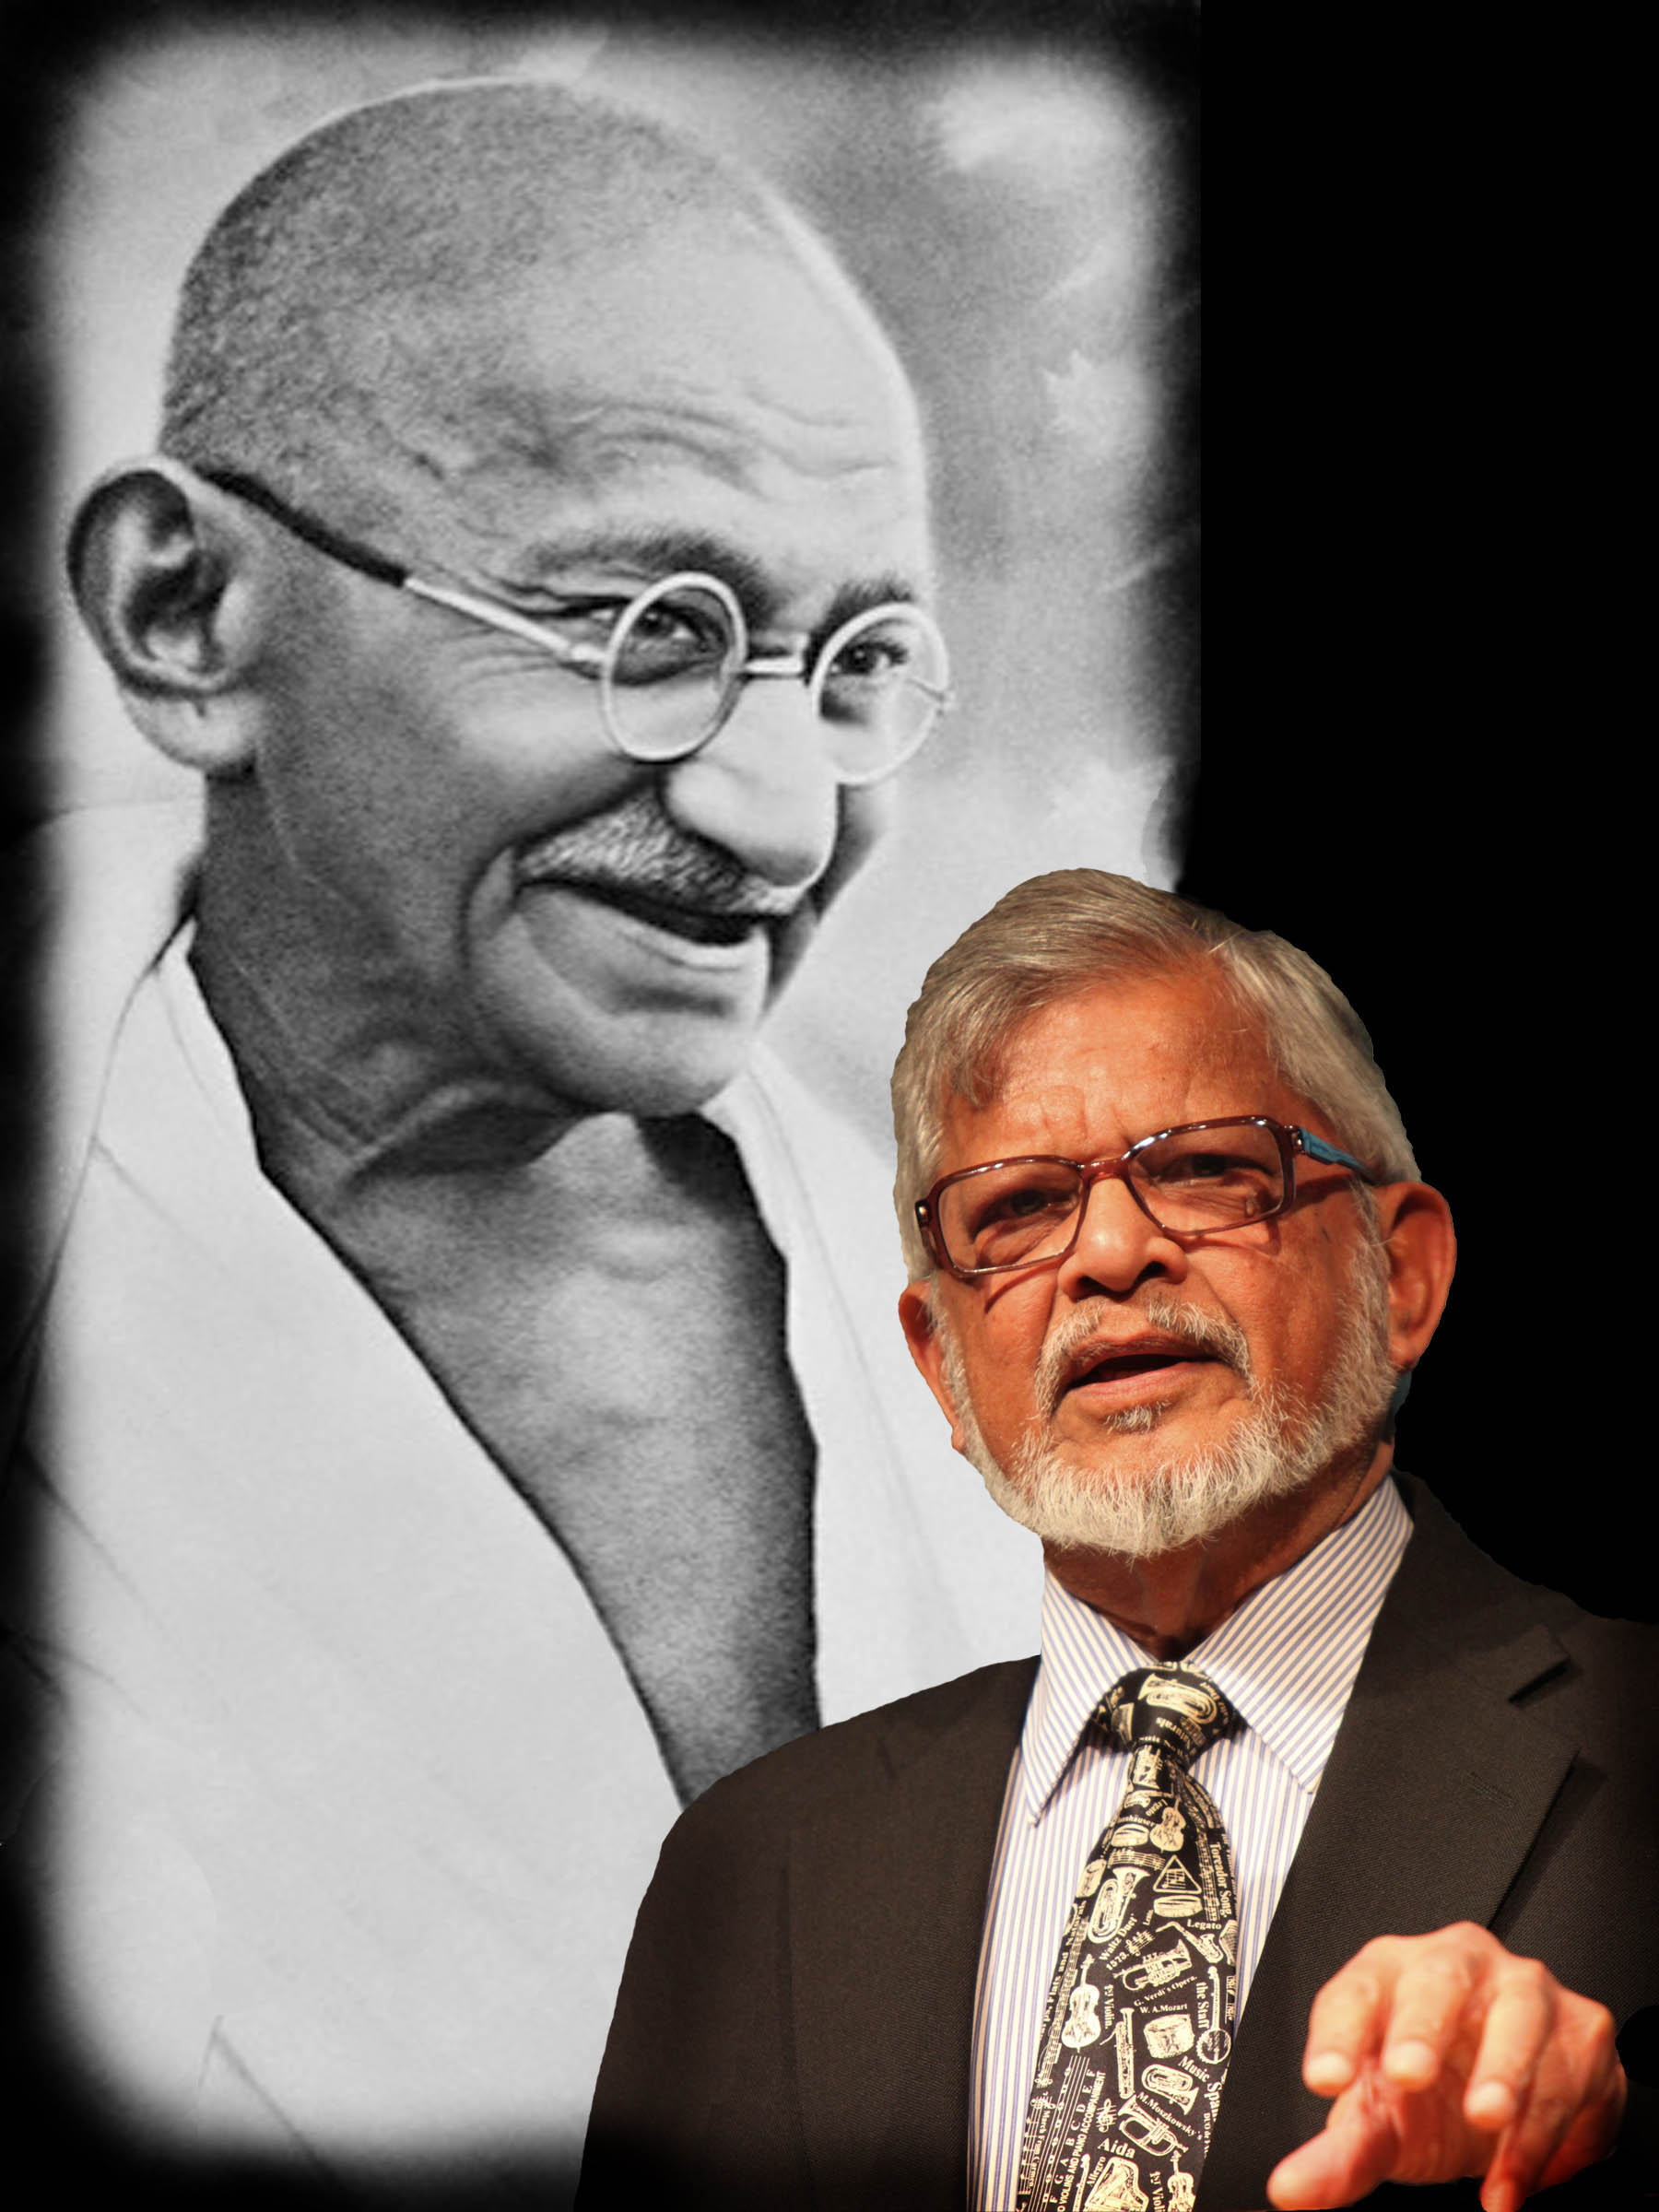 photo of Arun Gandhi with his grandfather, Mahatma K. Gandhi, in the background